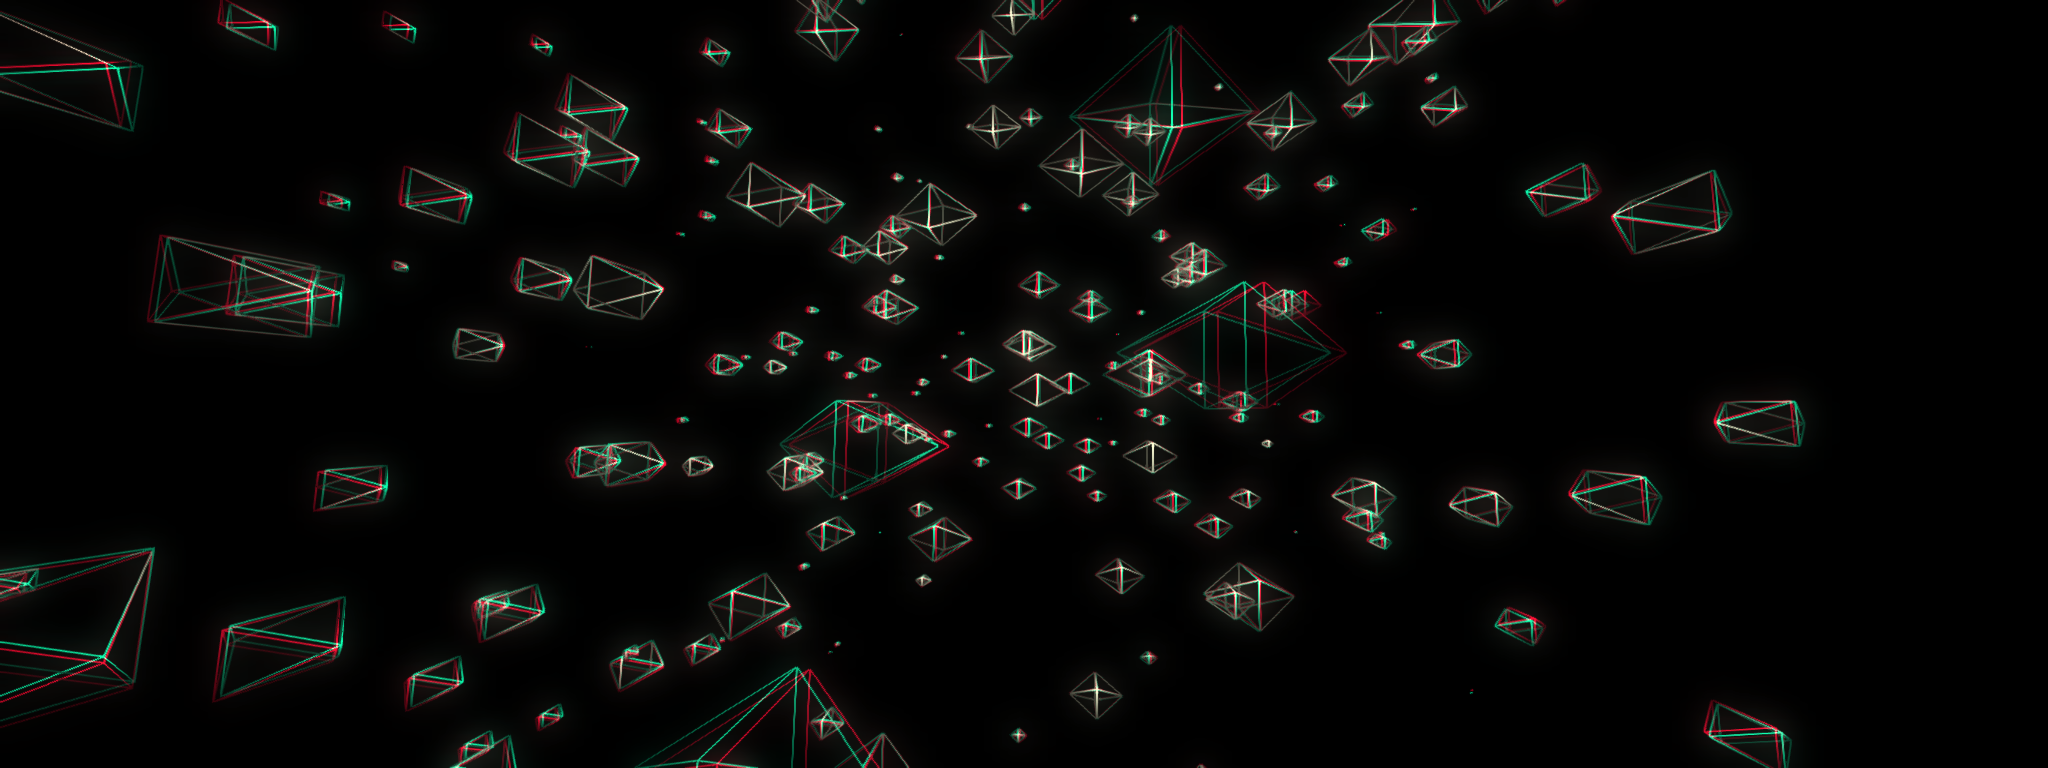 AnaglificoDmtr_-_syphon1_2014-09-14_at_19.11.07.png